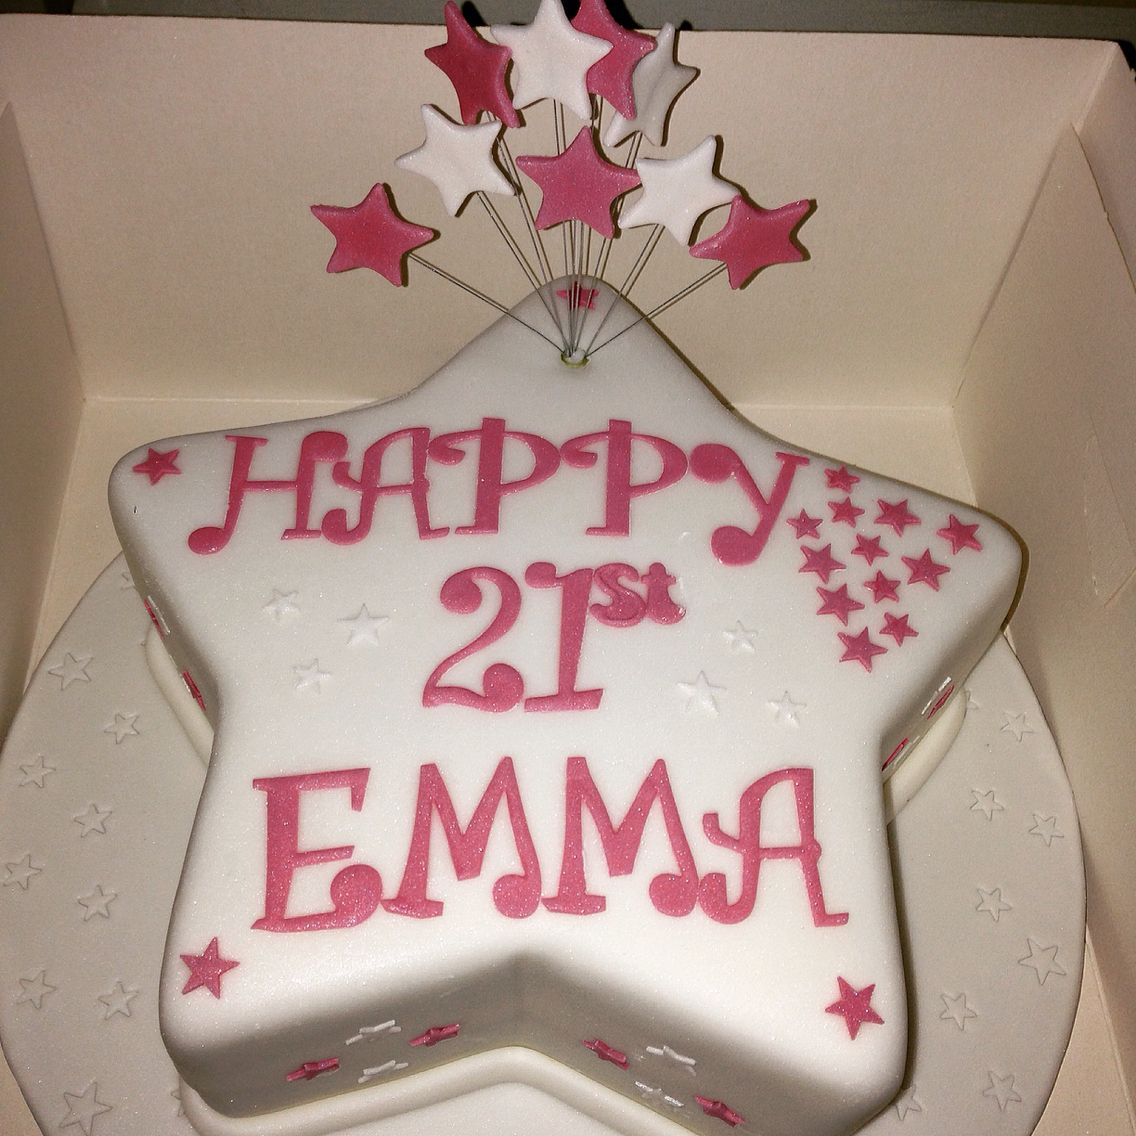 Miraculous Pink White Star Happy 21St Birthday Cake By Shelles Bakes Funny Birthday Cards Online Alyptdamsfinfo